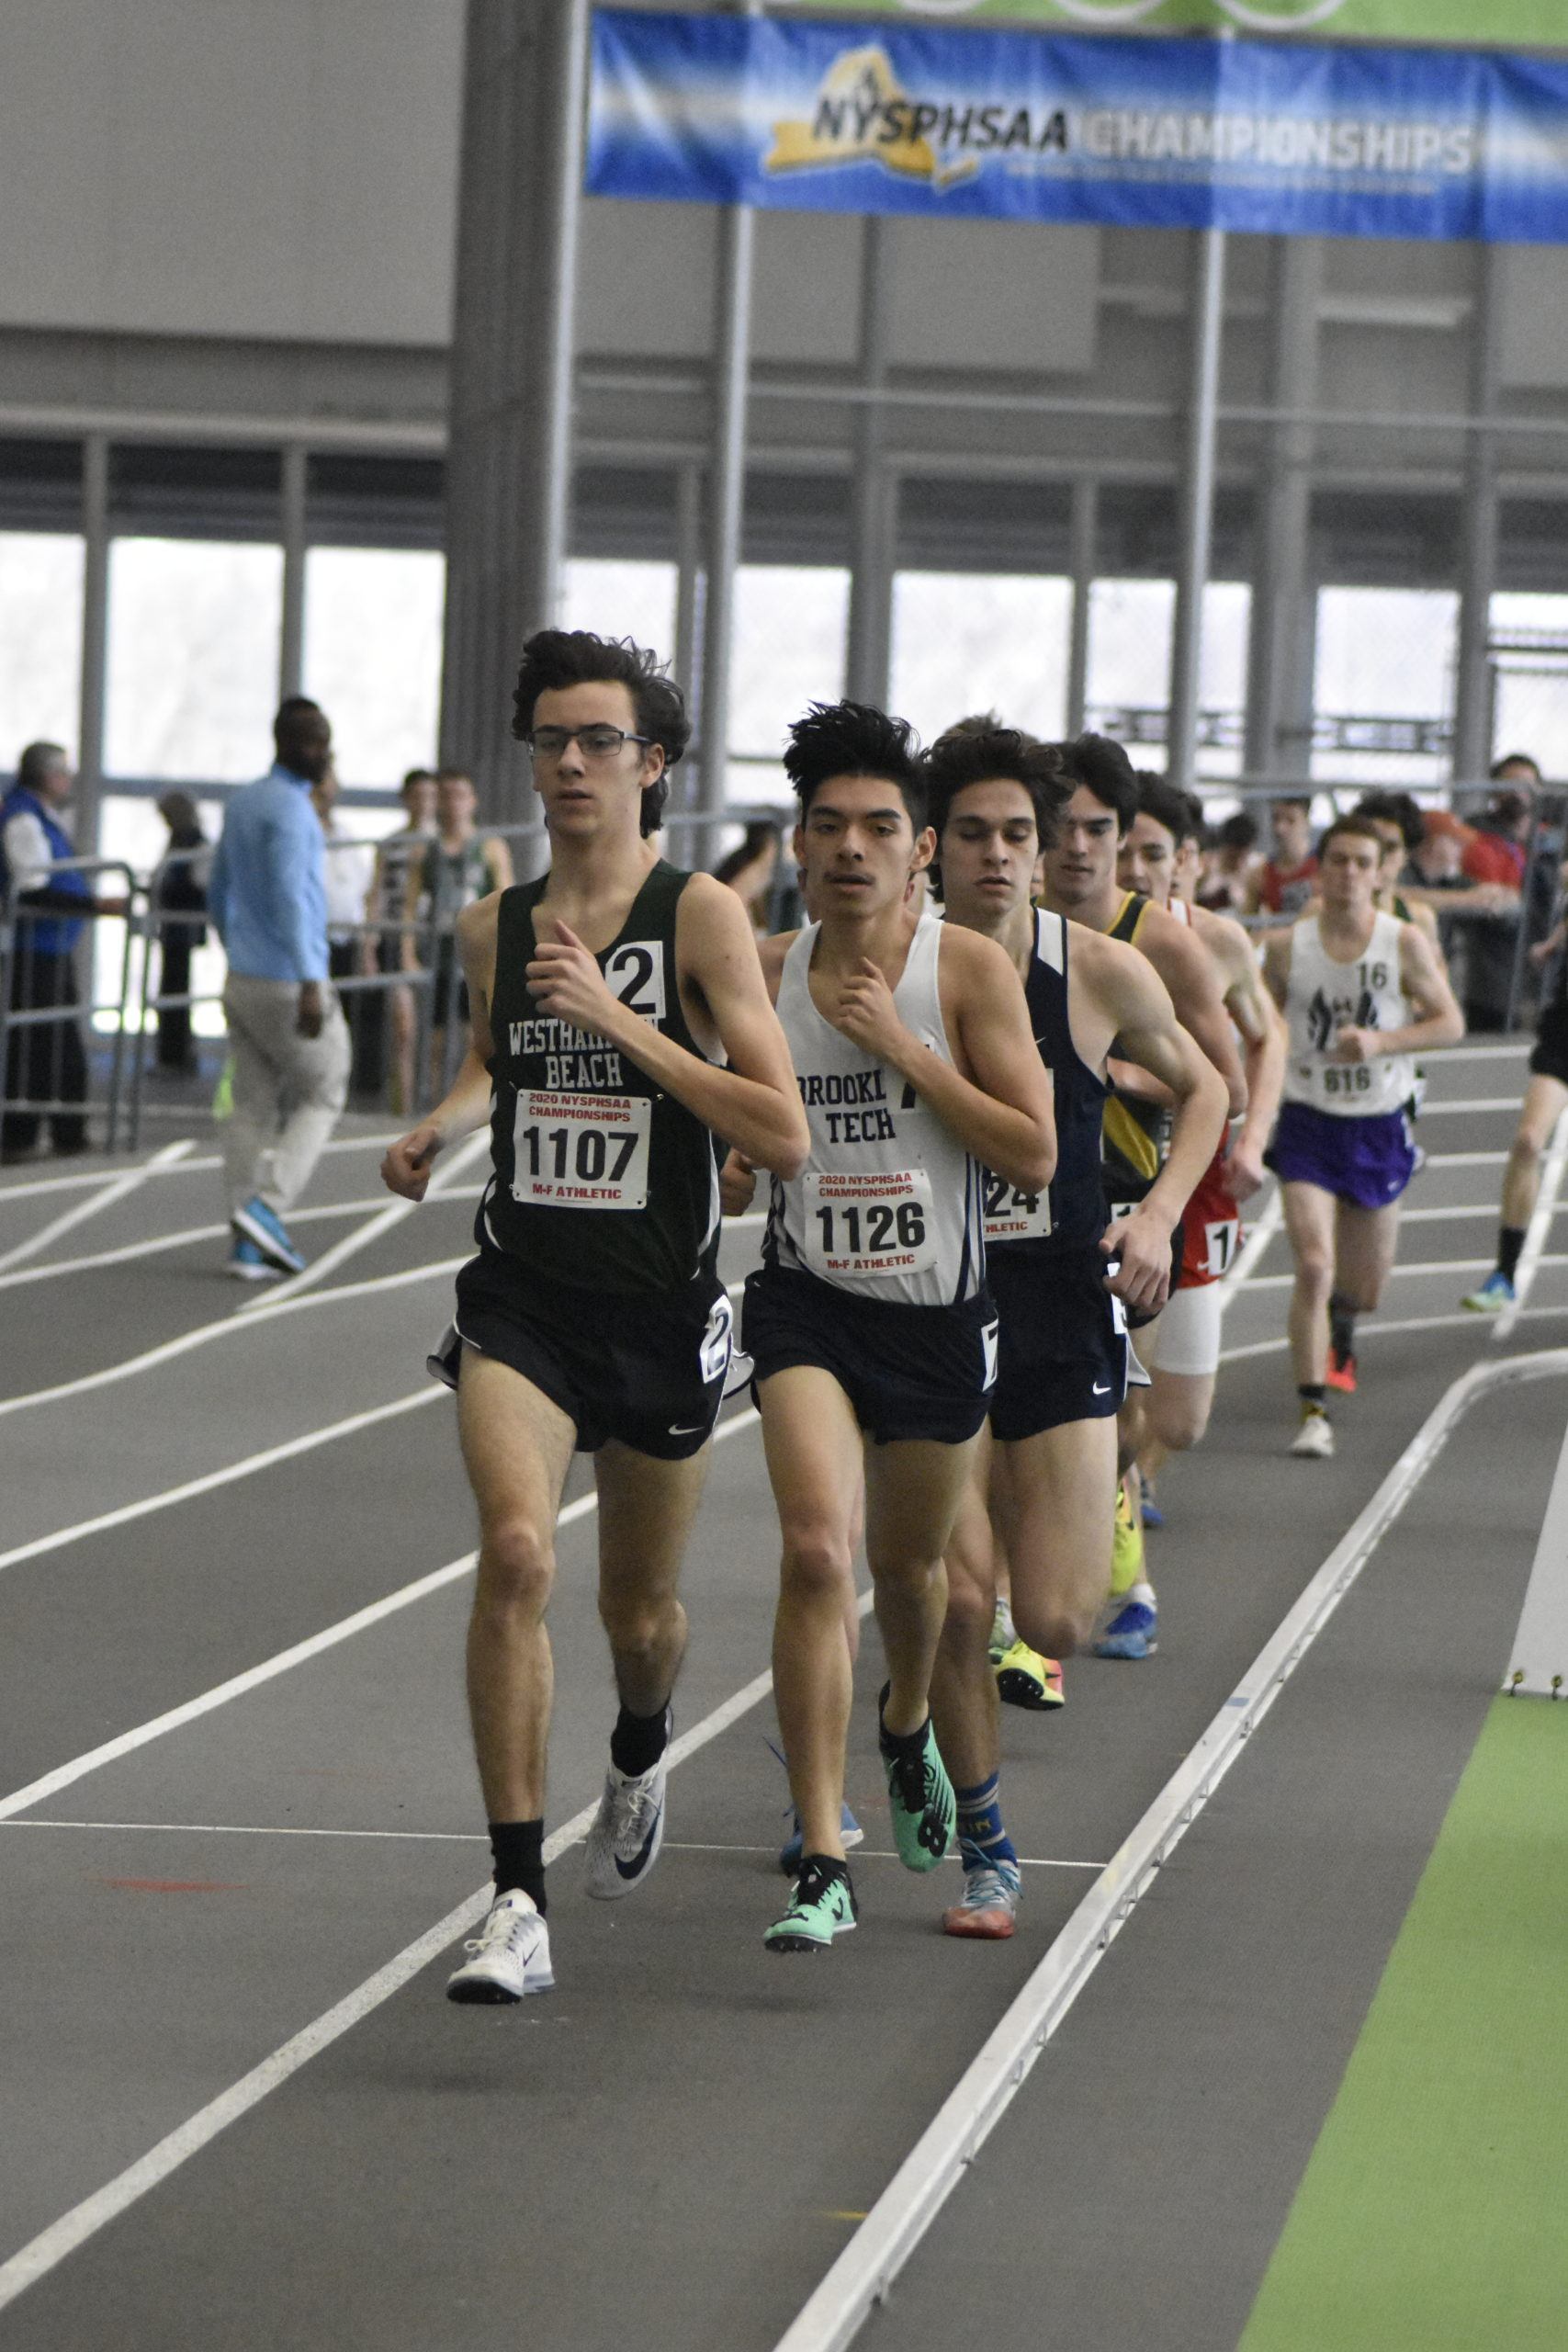 Westhampton Beach sophomore Gavin Ehlers is set to begin the 3,200-meter race at the New York State Indoor Track and Field Championships on Saturday.